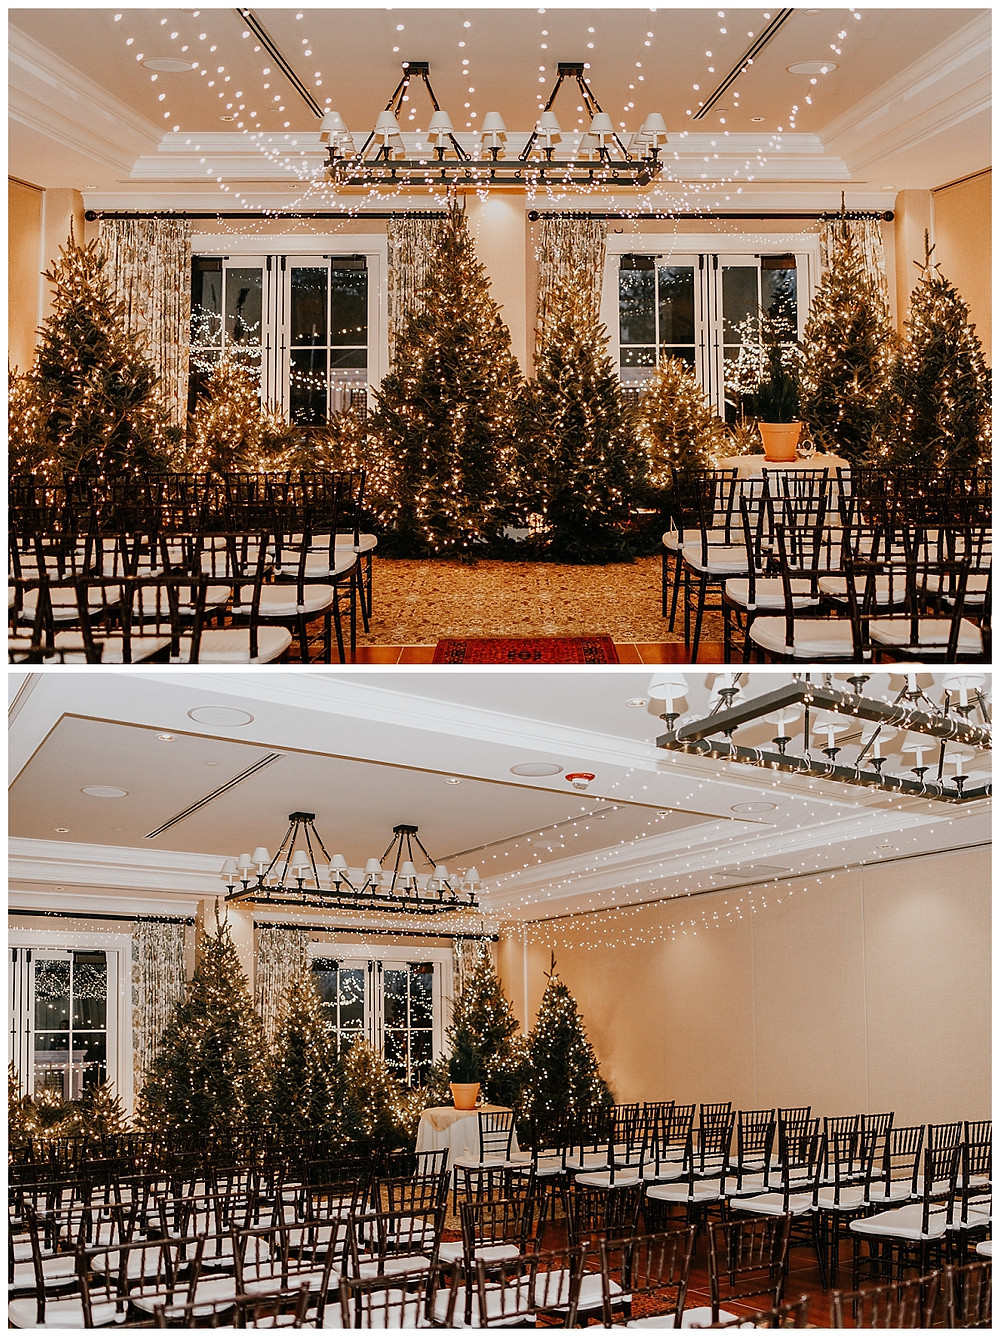 String-lit Christmas Styled Wedding Ceremony at the Kimpton Taconic Hotel, in Manchester VT